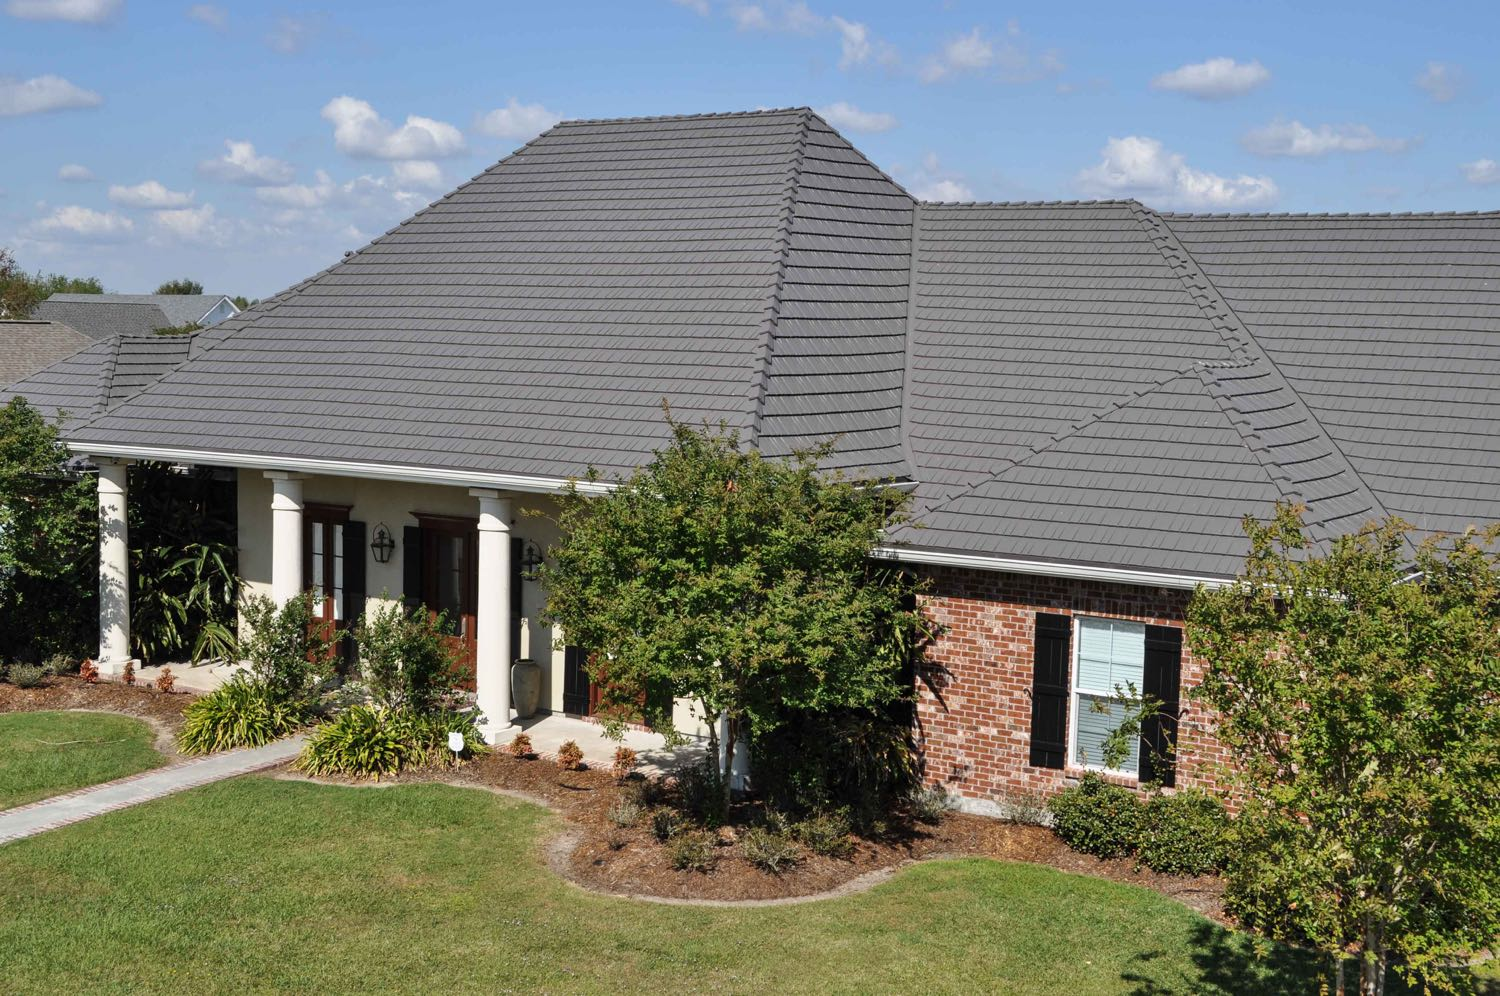 Roof Design Ideas: Metal Roofs By CLASSIC® Metal Roofing Systems